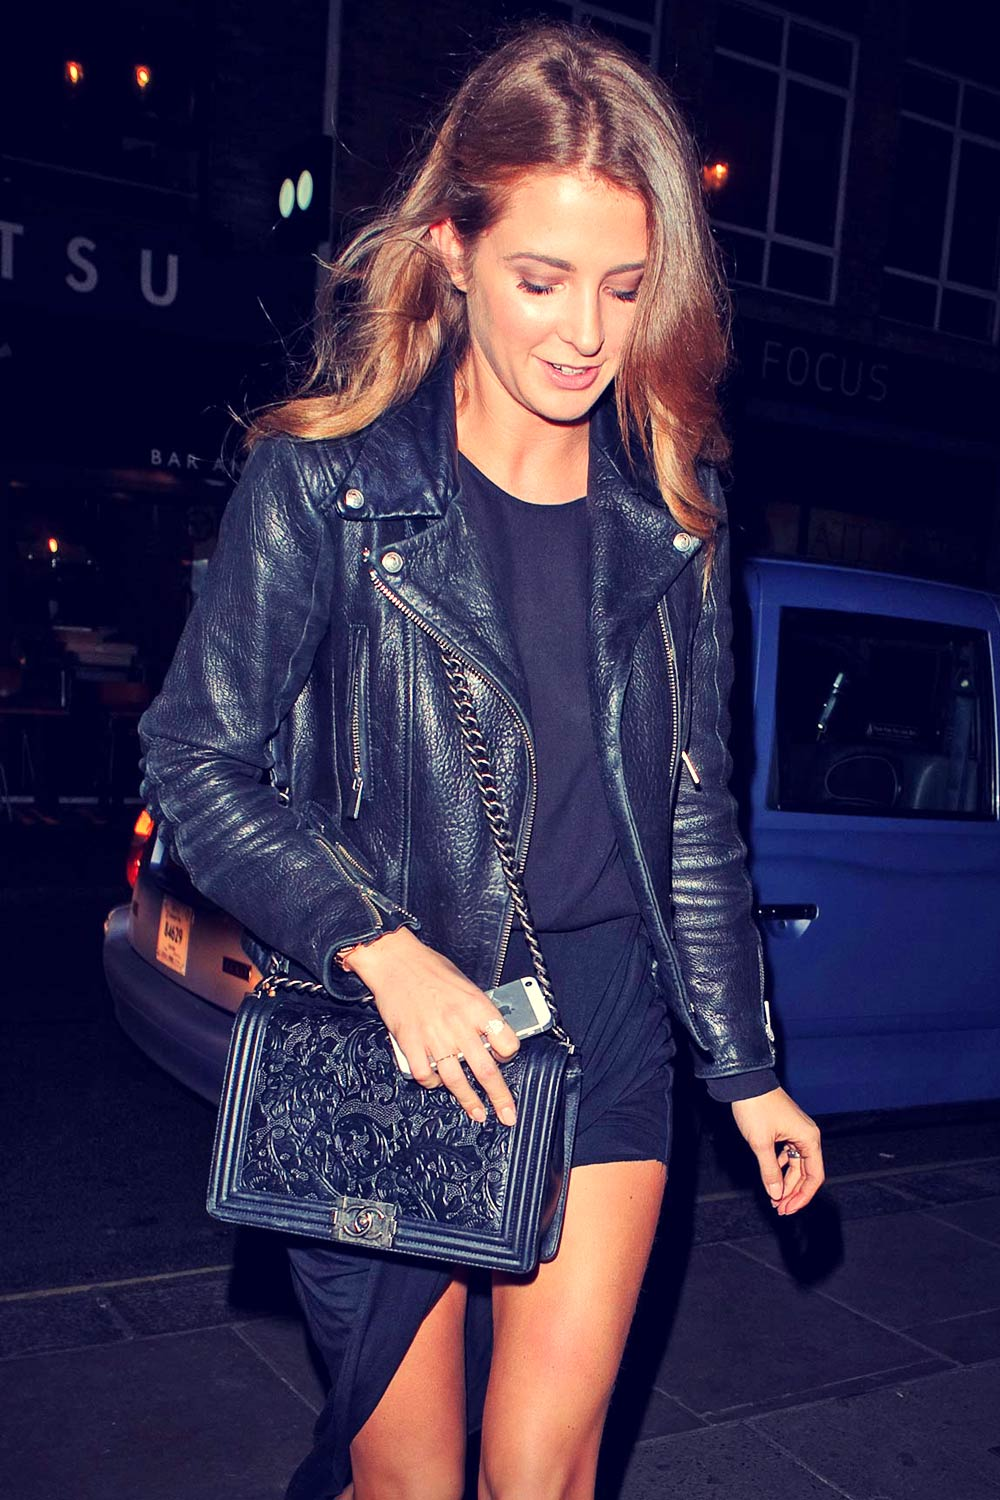 Millie Mackintosh attends Urban Decay VIP dinner